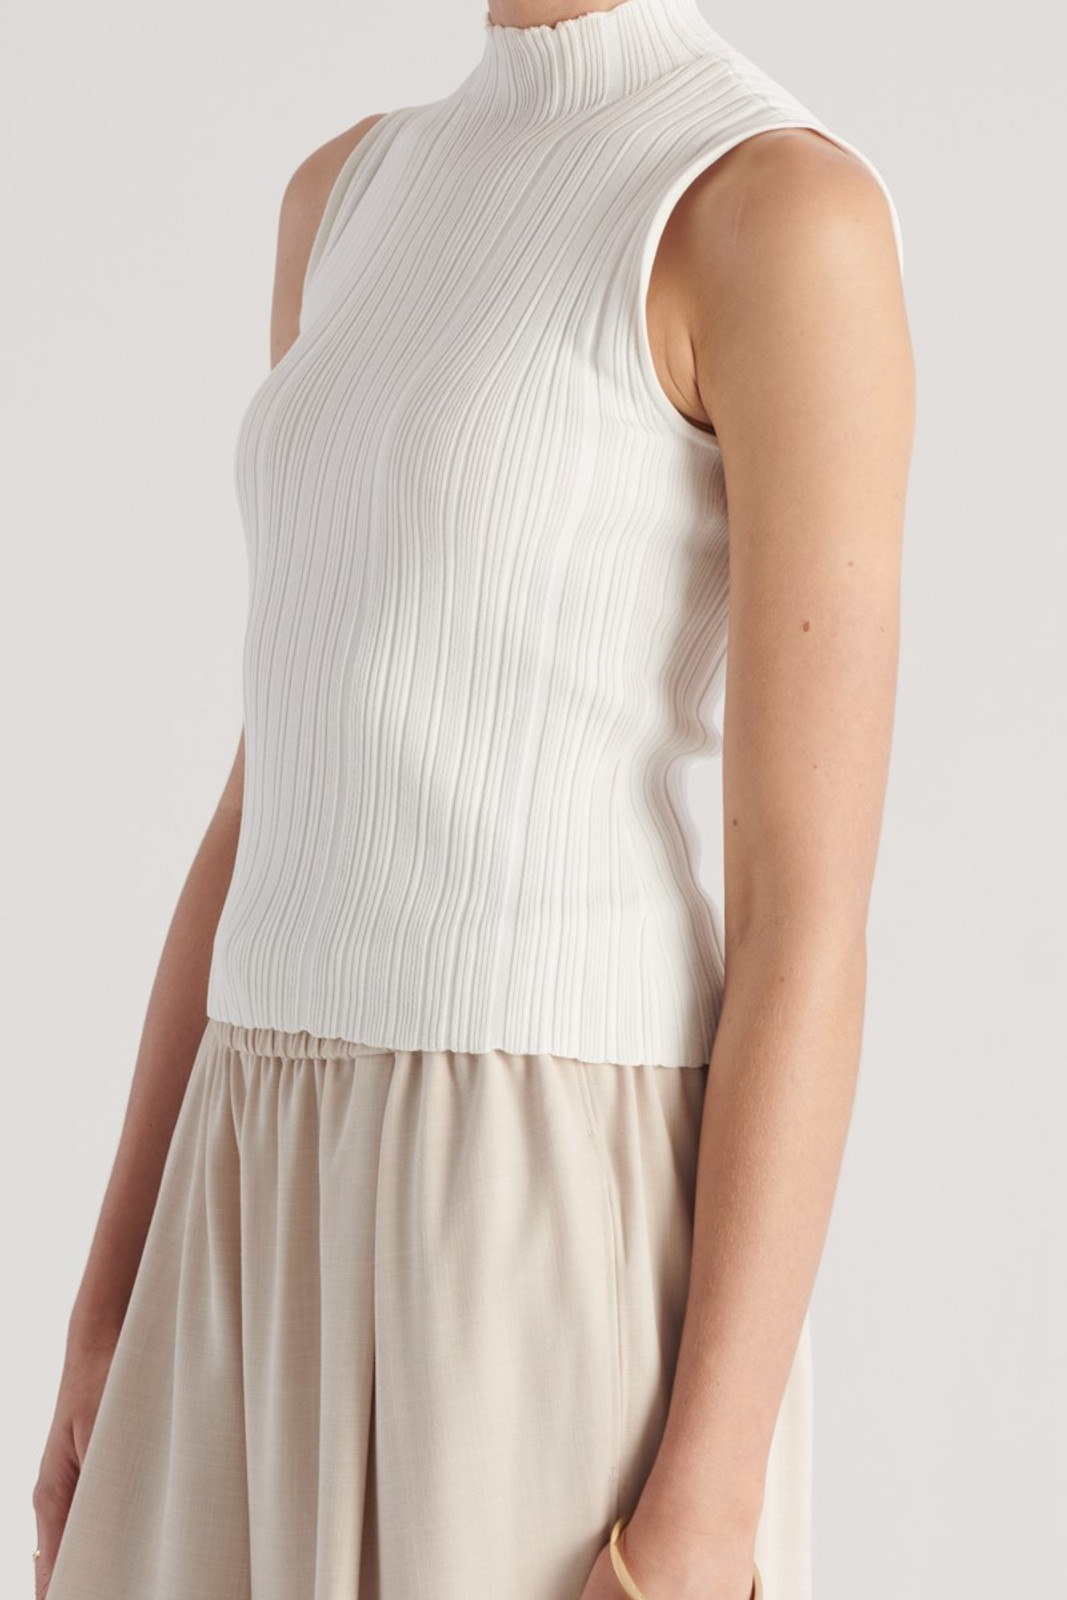 Elka Collective WOMENS White Pillar Knit Top 7